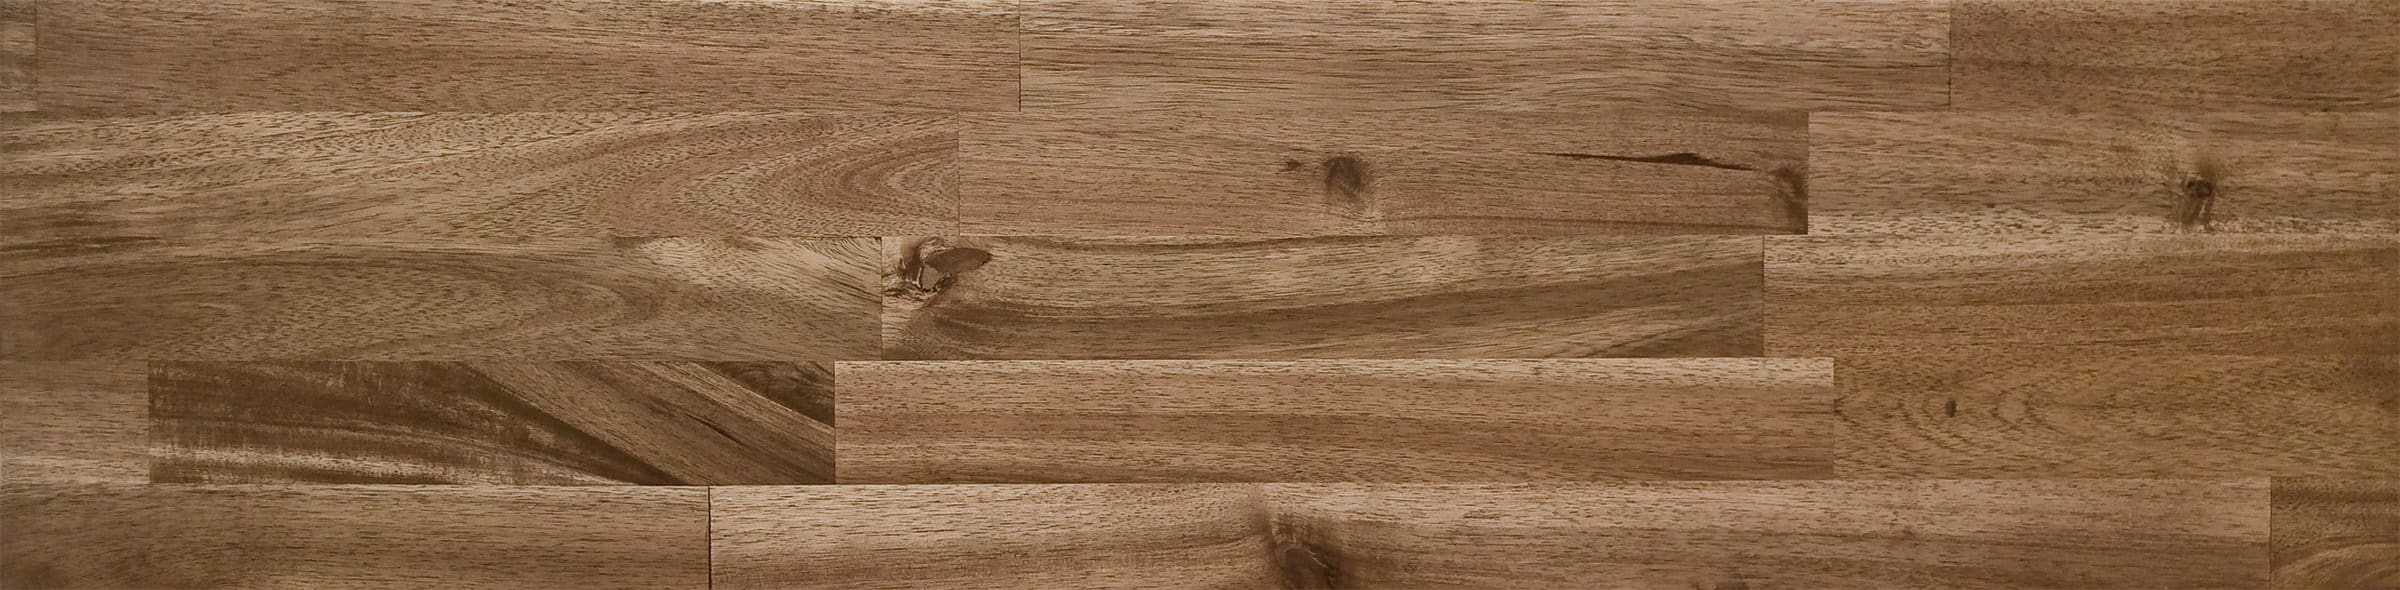 Do it + Garden Legno lamellare acacia 18 mm